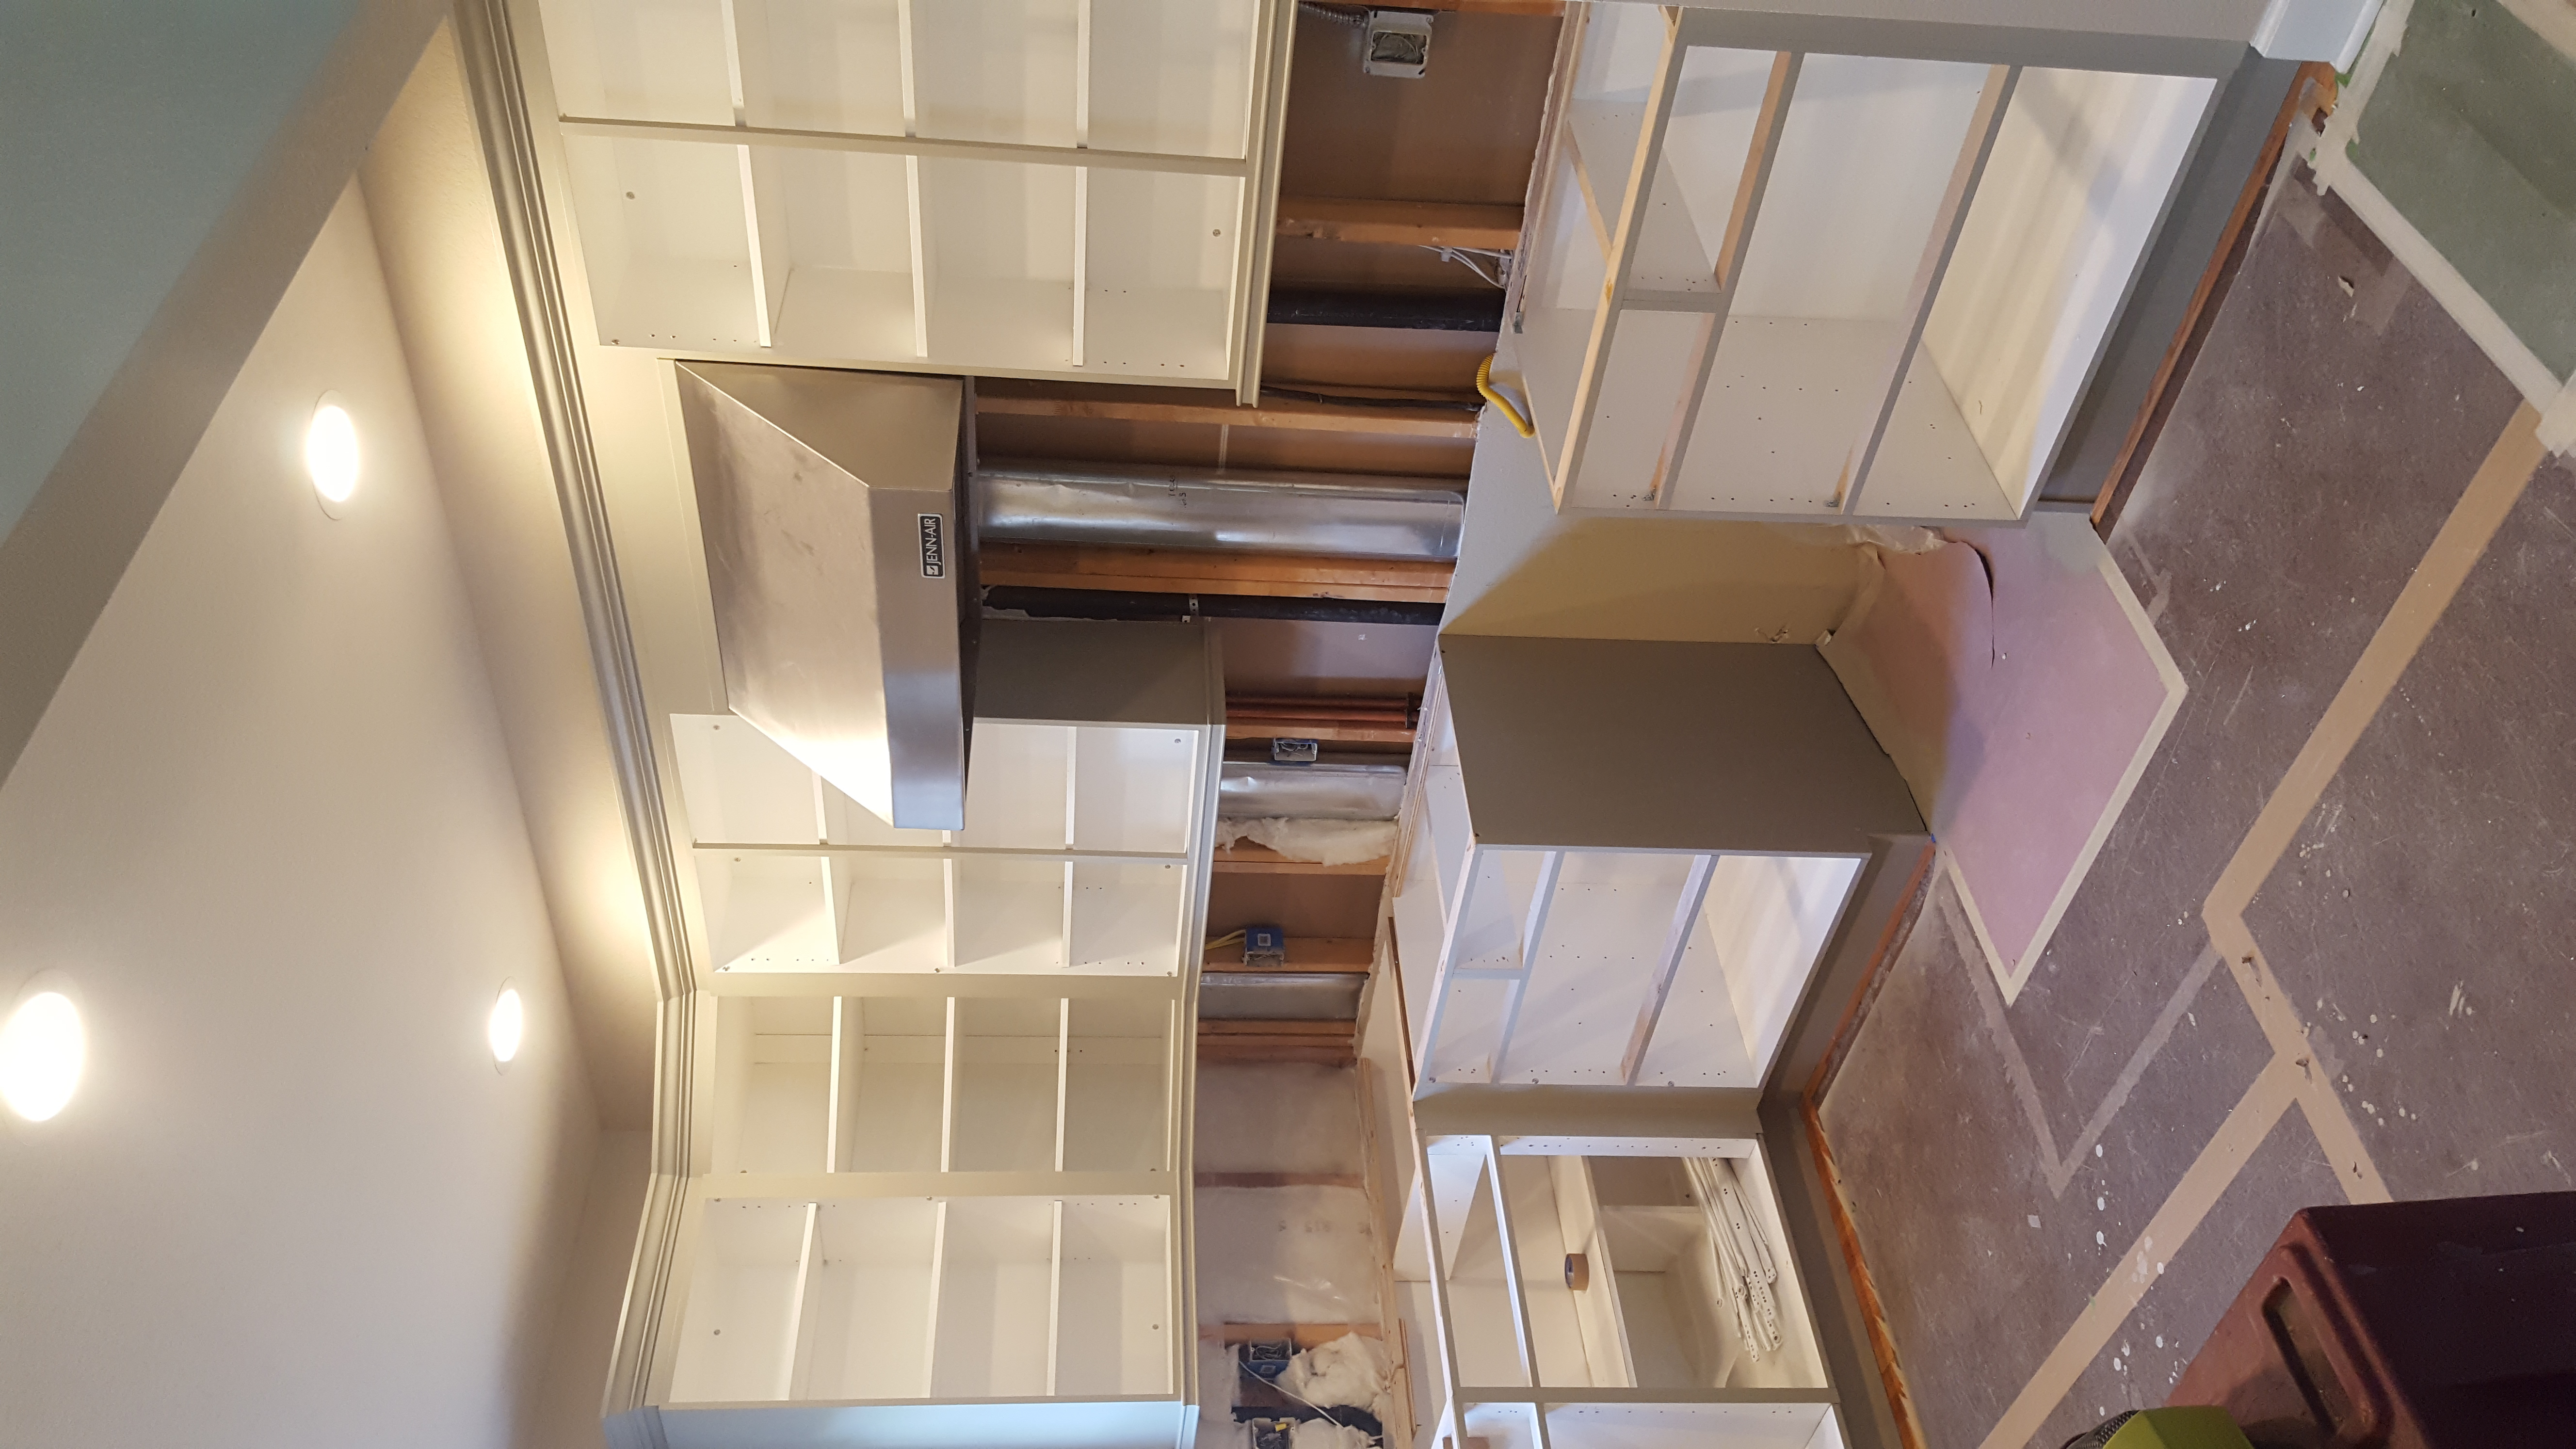 Imhoff cabinets